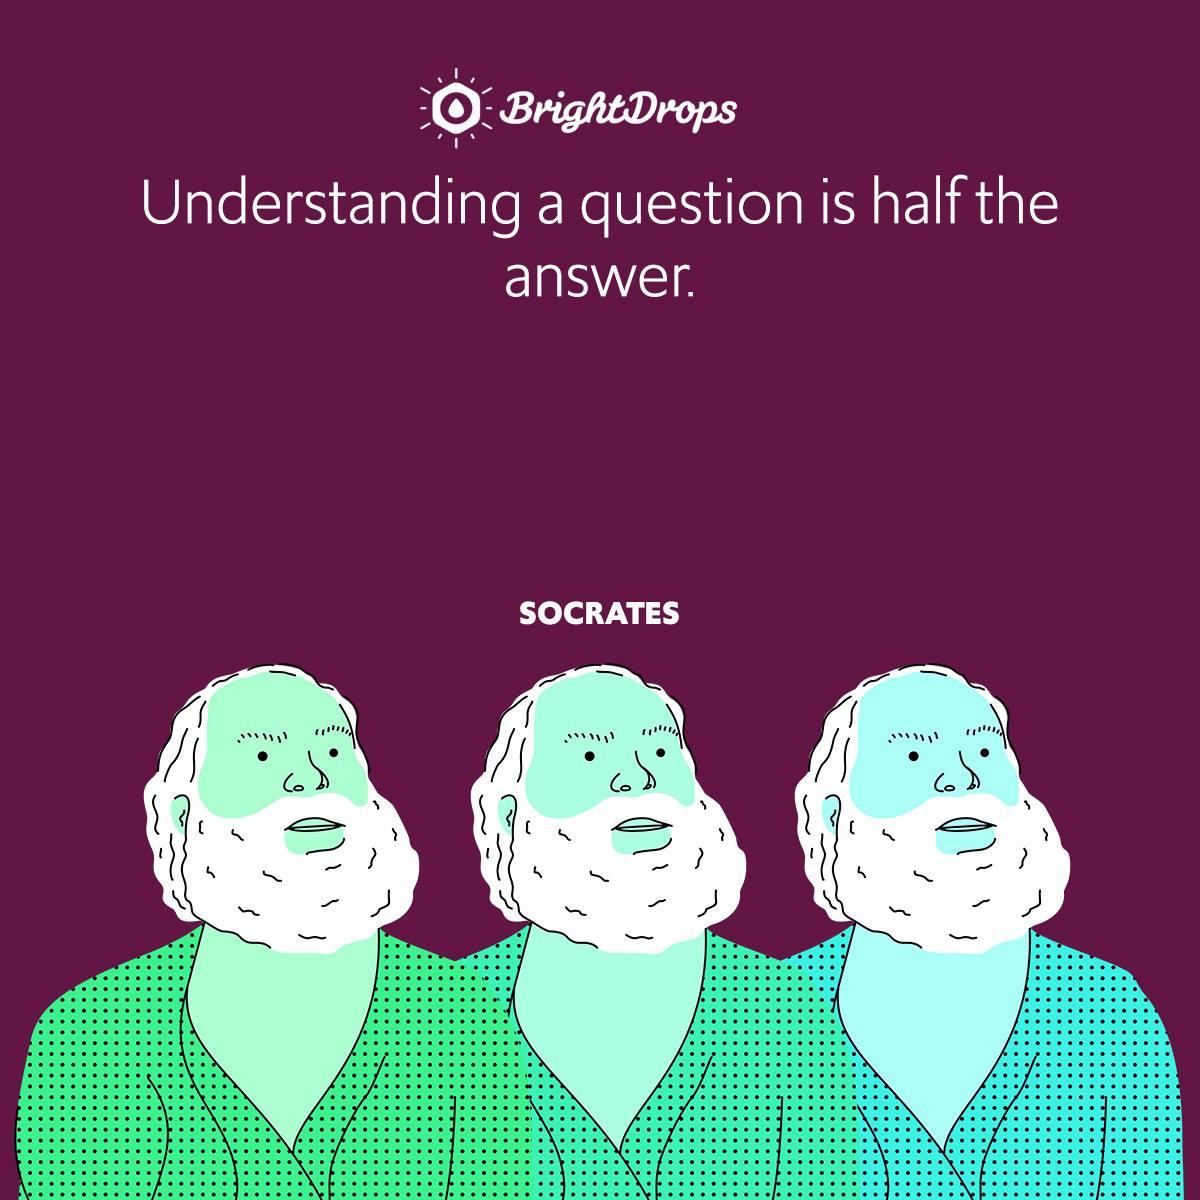 Understanding a question is half the answer.